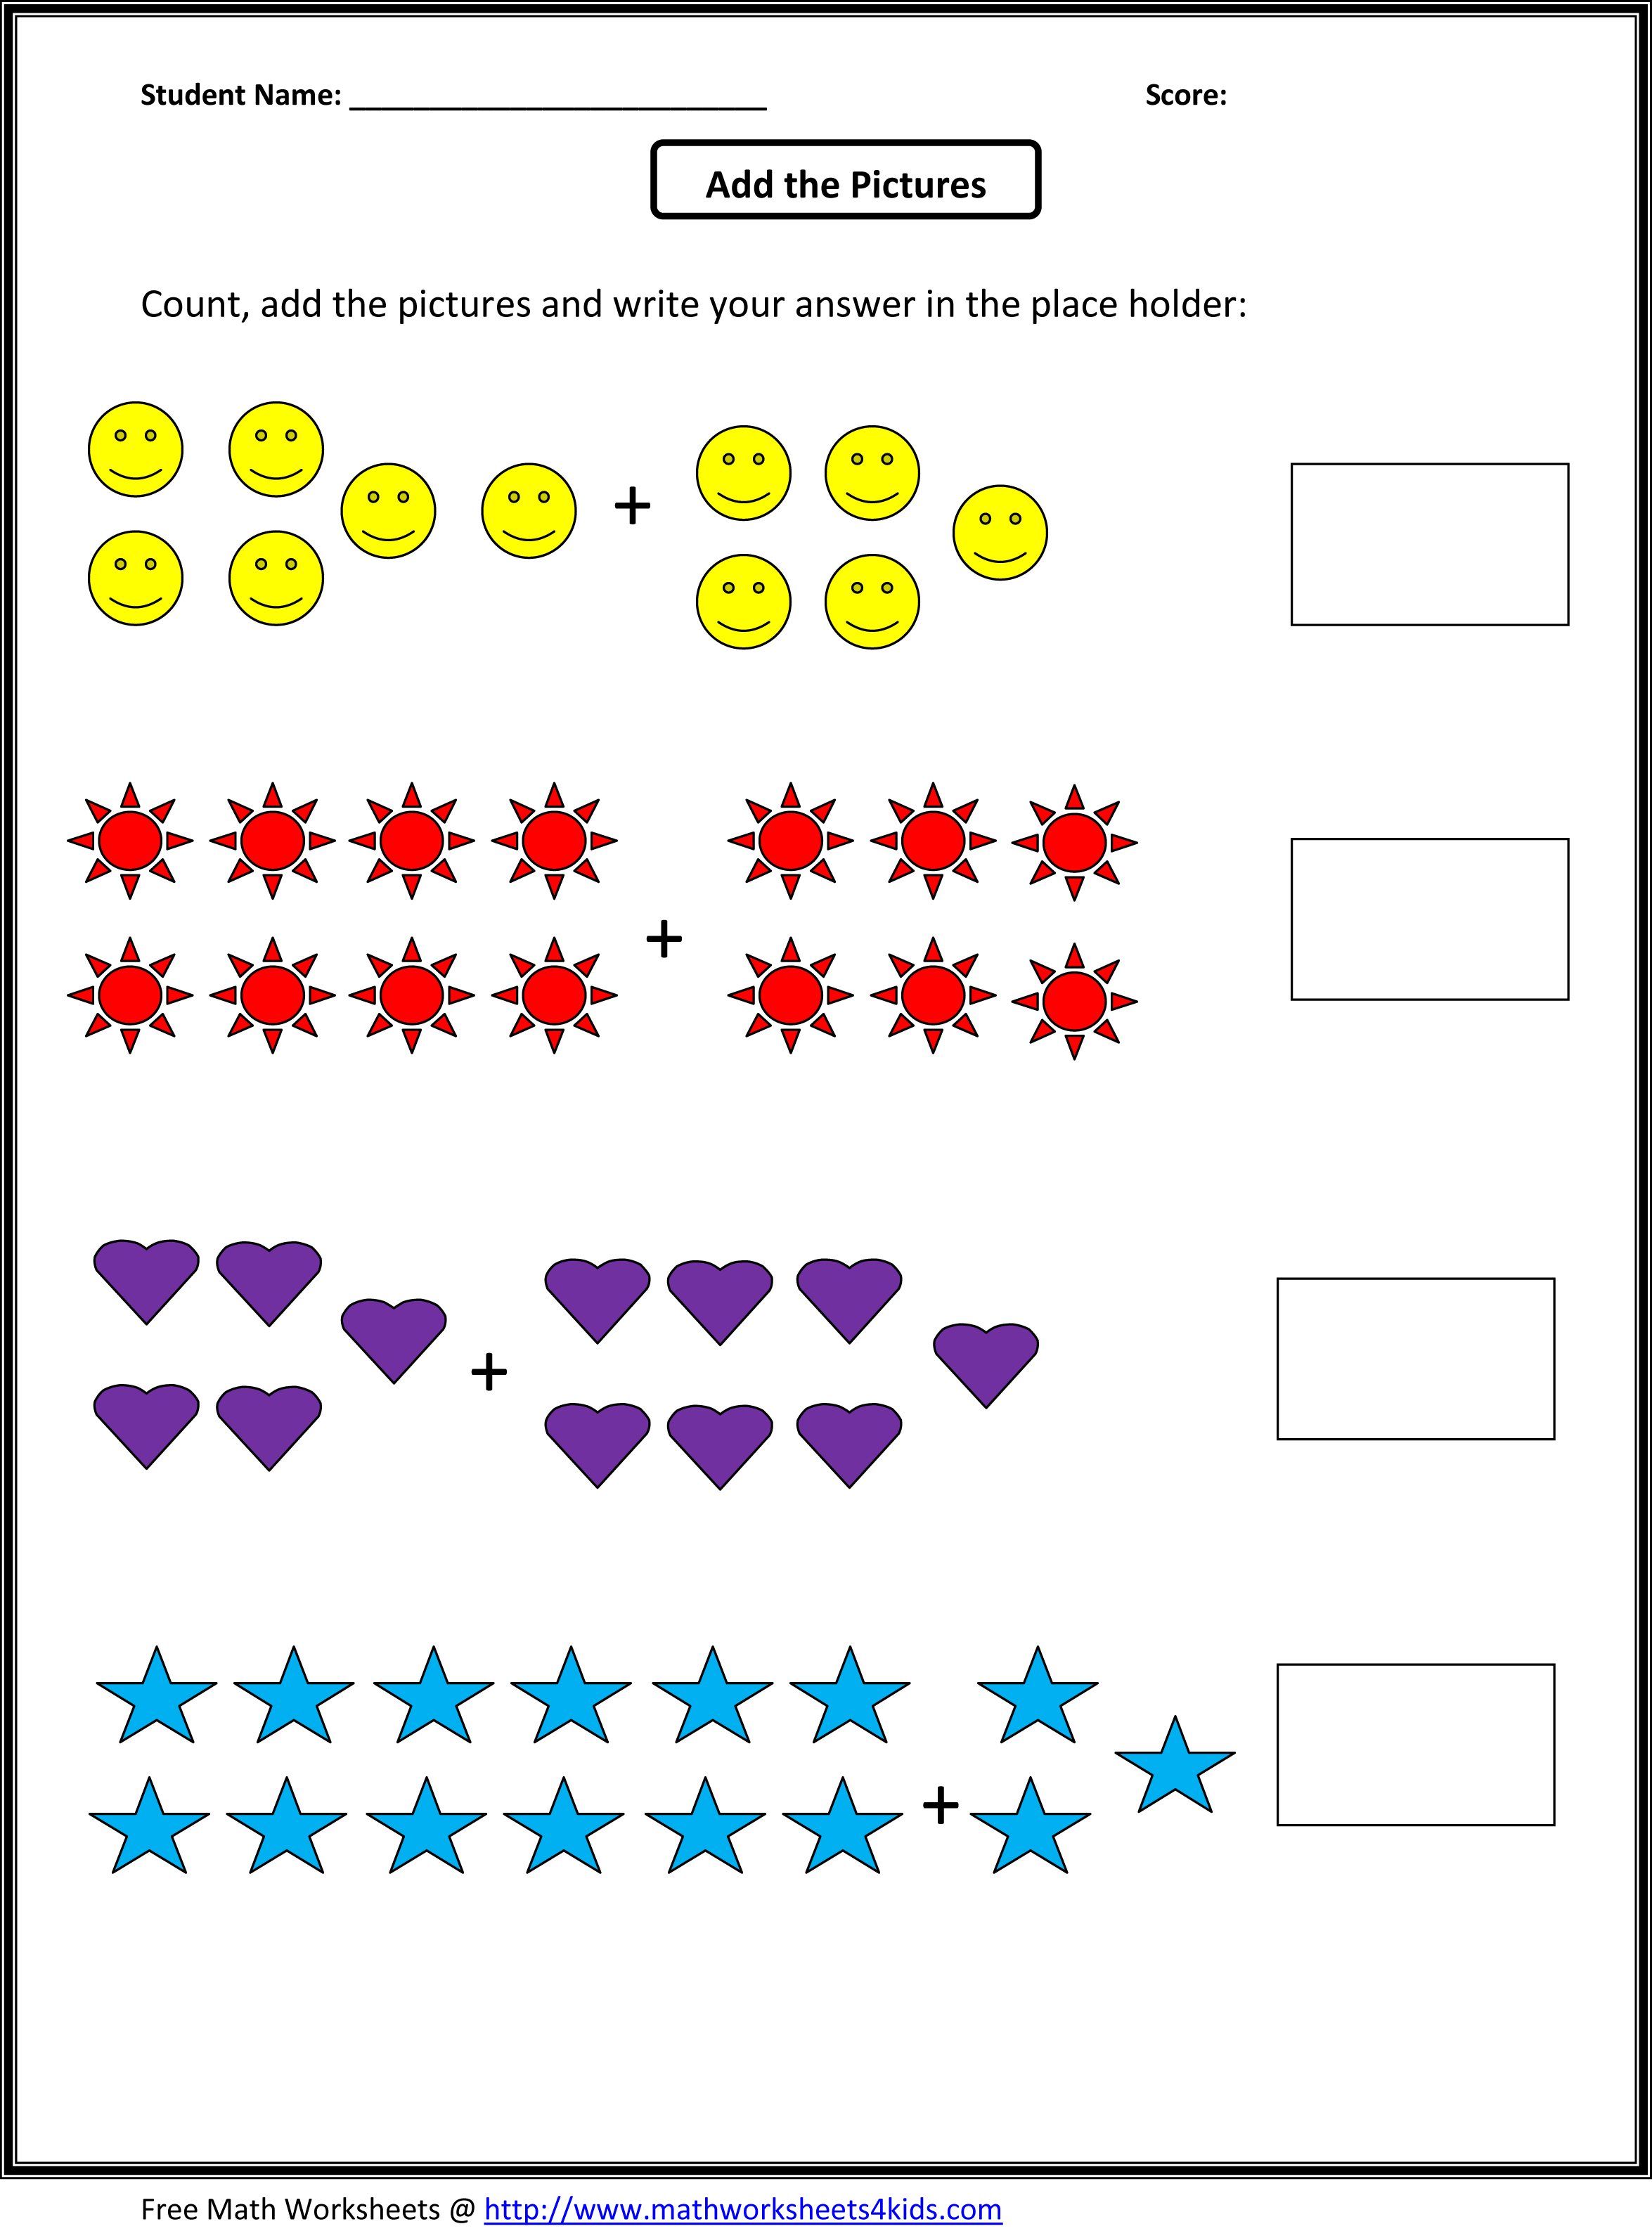 Weirdmailus  Unusual Grade  Maths Worksheet  Reocurent With Exquisite Math Worksheets For St Grade Free  Reocurent With Archaic Beginner Math Worksheets Also We Sight Word Worksheet In Addition Solving Quadratic Equation By Factoring Worksheet And Division As Repeated Subtraction Worksheets As Well As Fact Family Math Worksheets Additionally Classifying Worksheet From Reocurentcom With Weirdmailus  Exquisite Grade  Maths Worksheet  Reocurent With Archaic Math Worksheets For St Grade Free  Reocurent And Unusual Beginner Math Worksheets Also We Sight Word Worksheet In Addition Solving Quadratic Equation By Factoring Worksheet From Reocurentcom